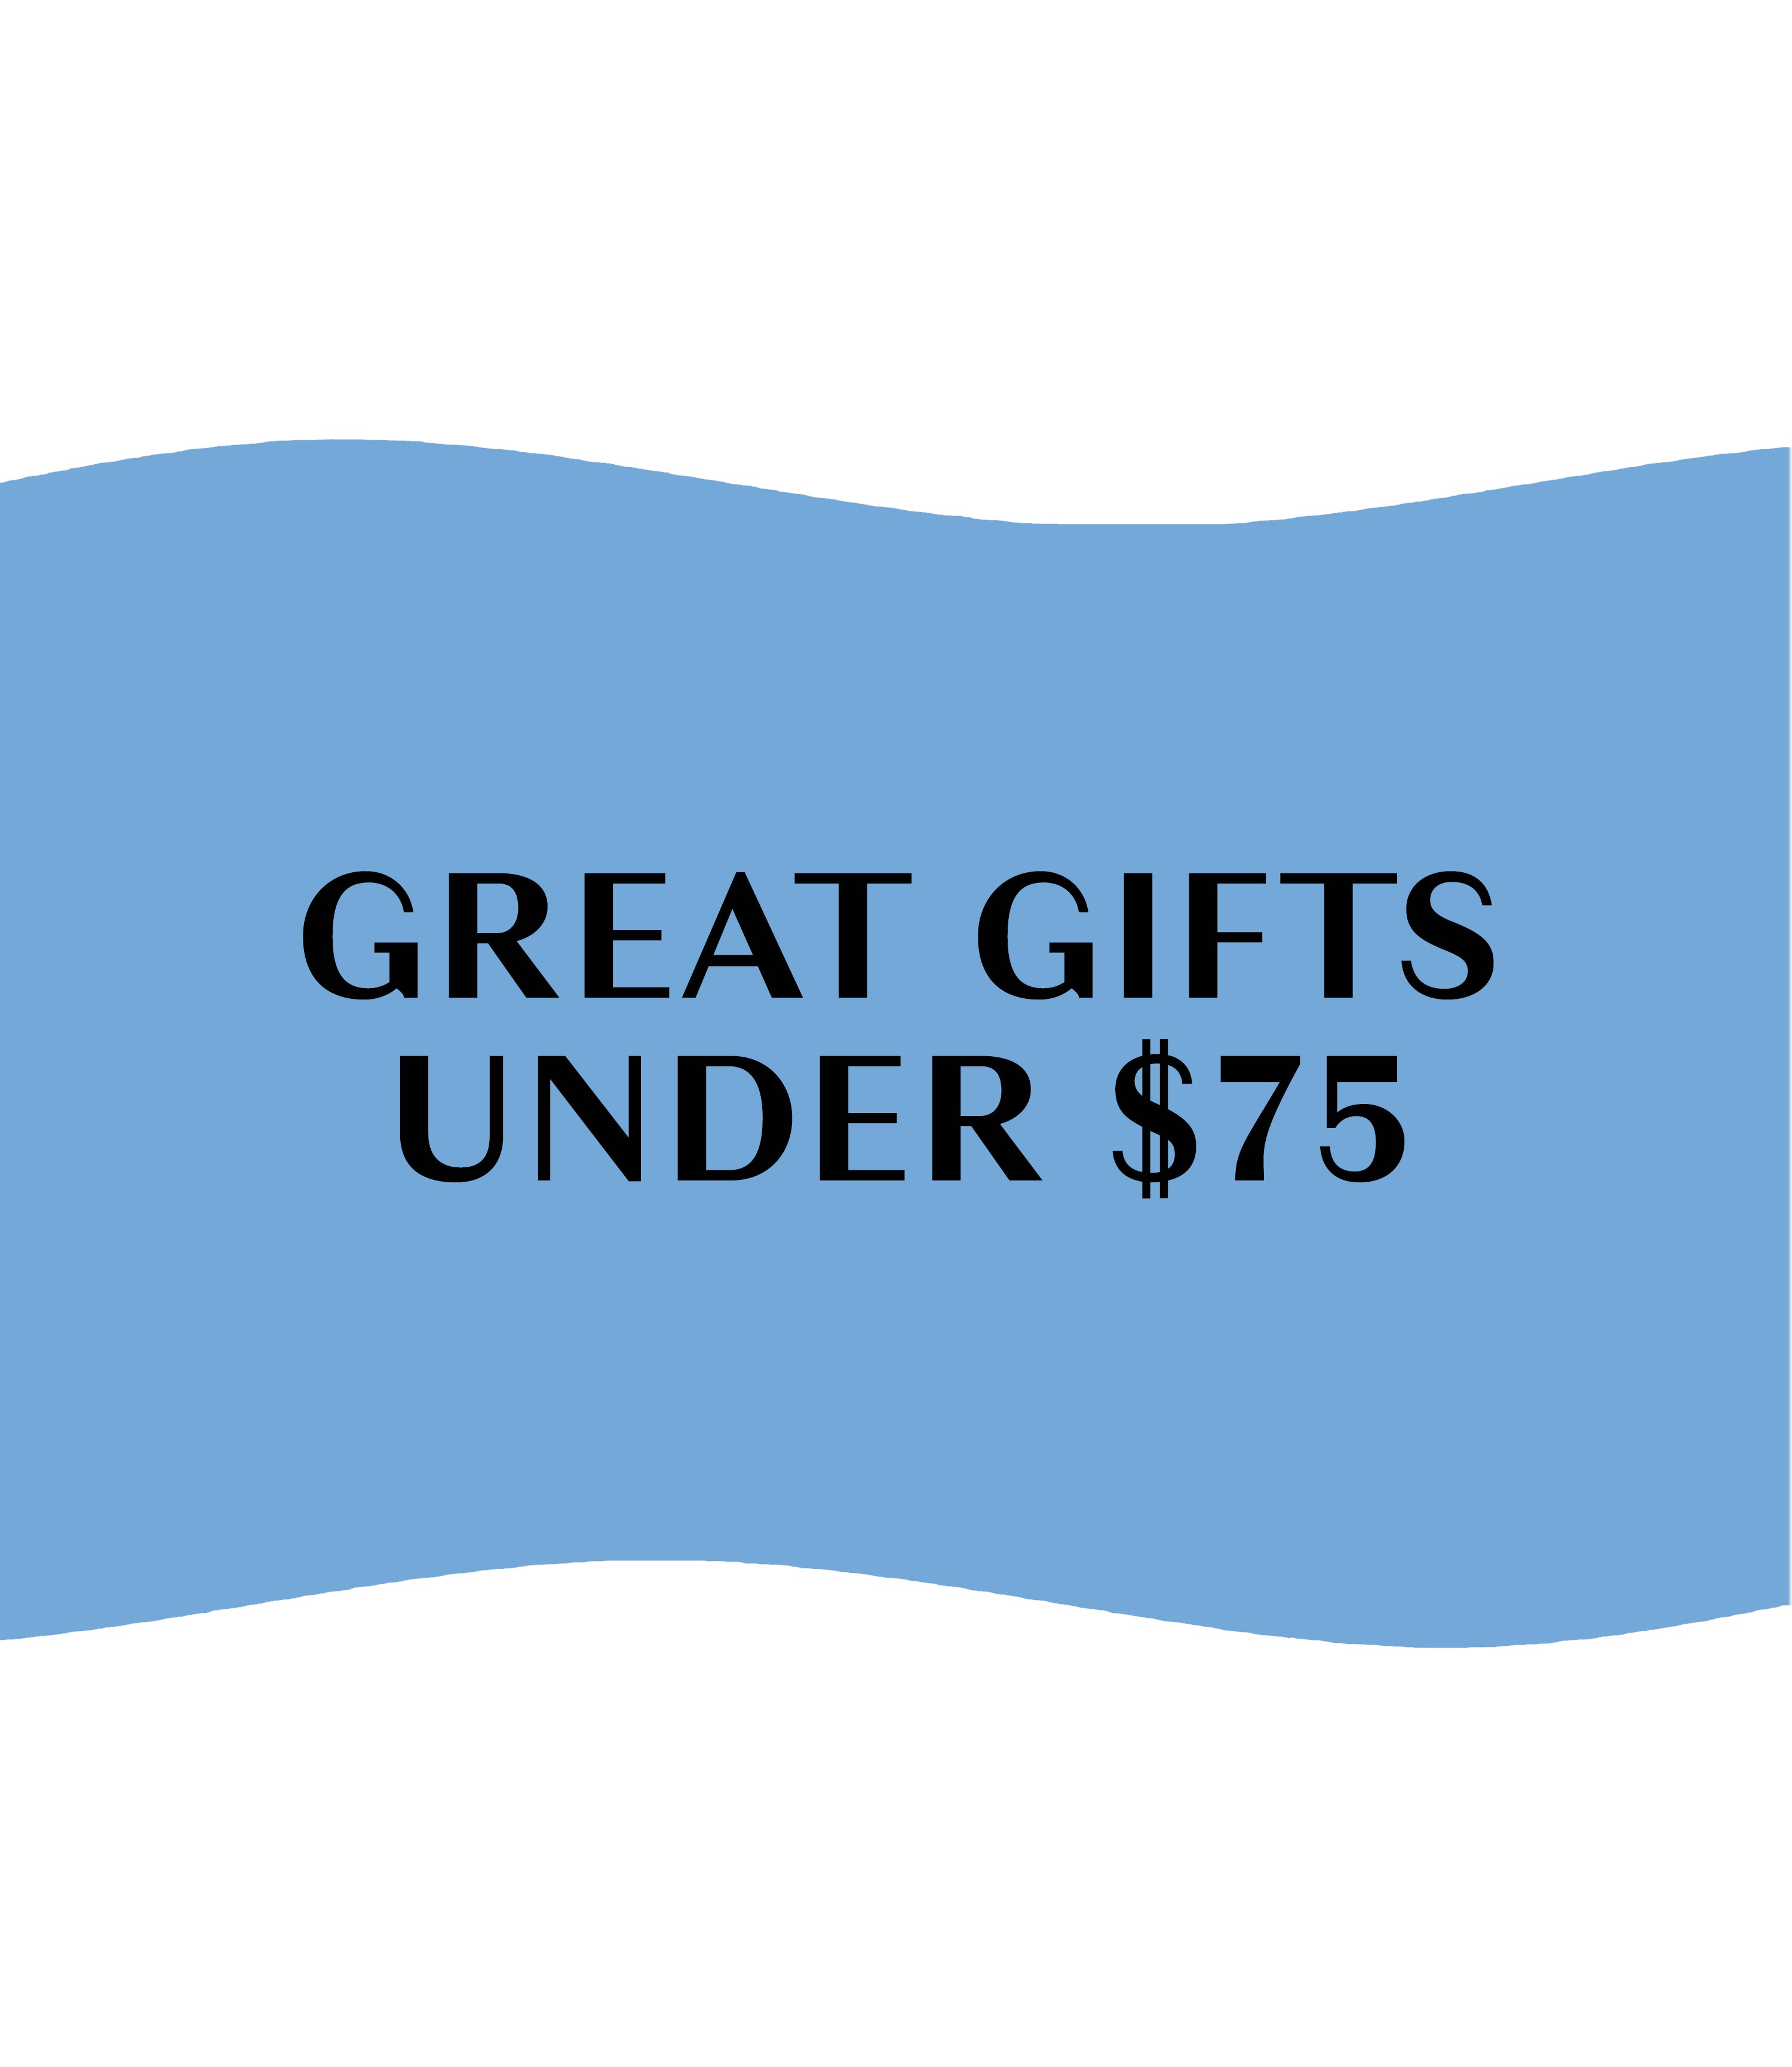 Holiday Gift Guide 2020 - Gifts Under $75 - Holiday Gift Guide 2020 - Gifts Under $75